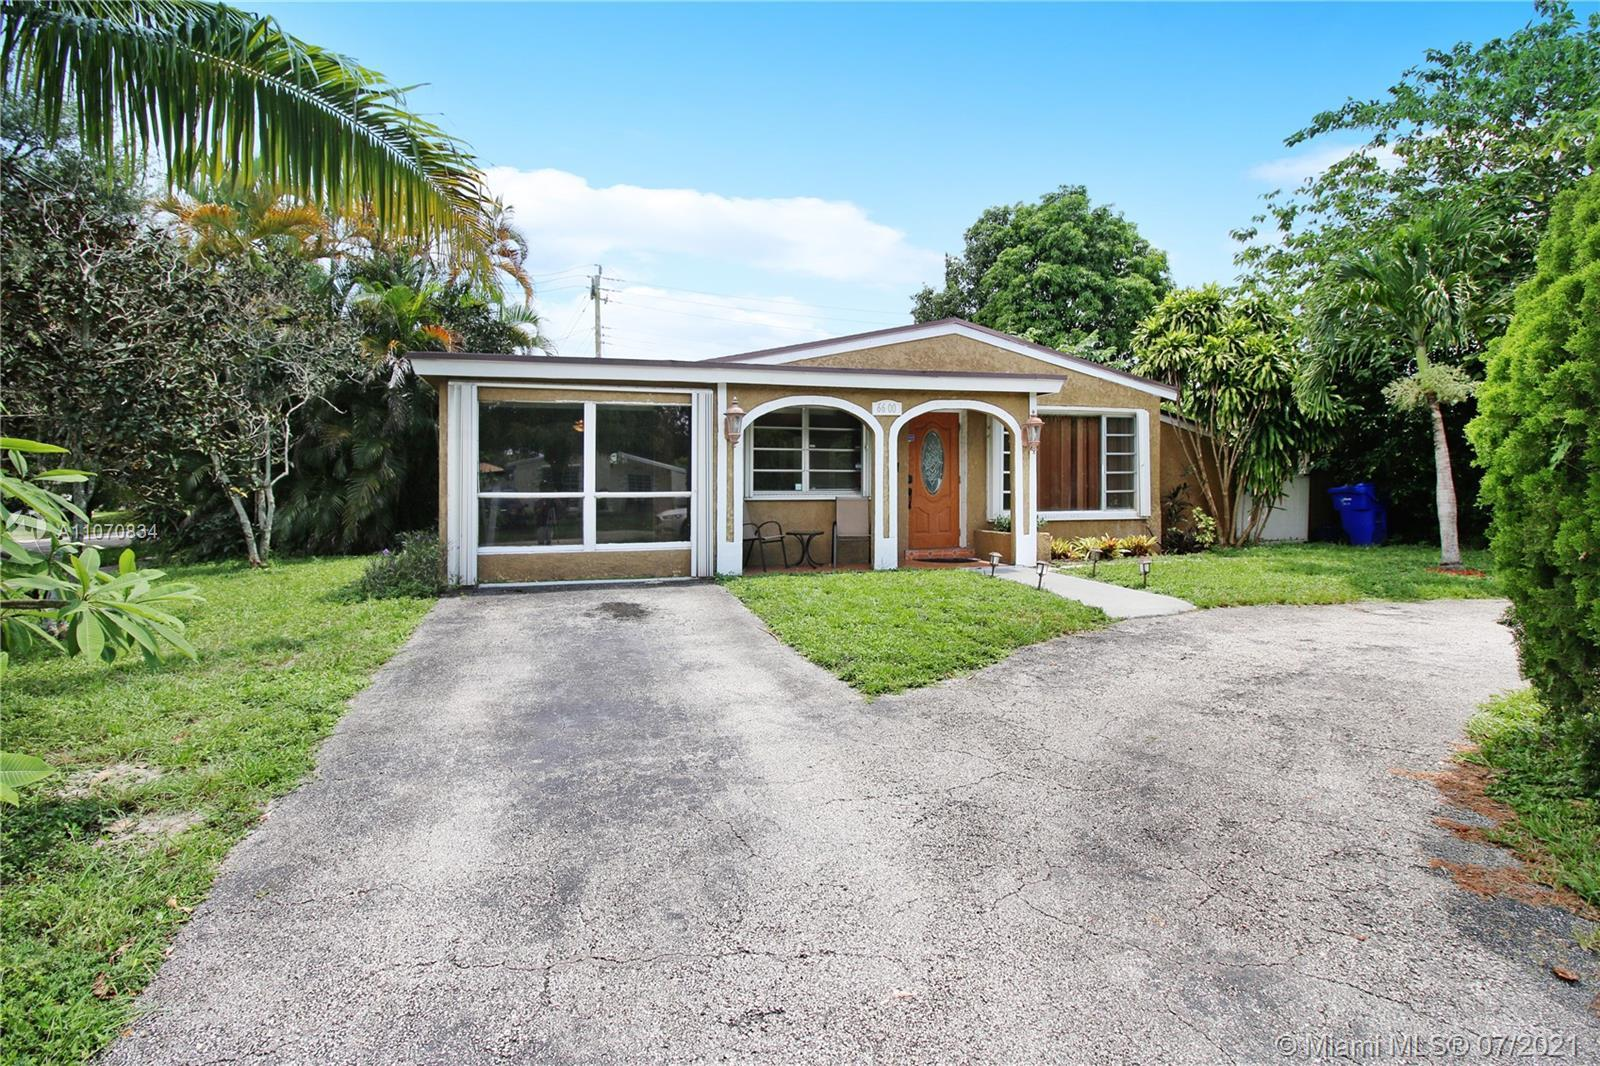 Location Location Location. Cozy 3/2 in the heart of Hollywood FL waiting for its new family. This h